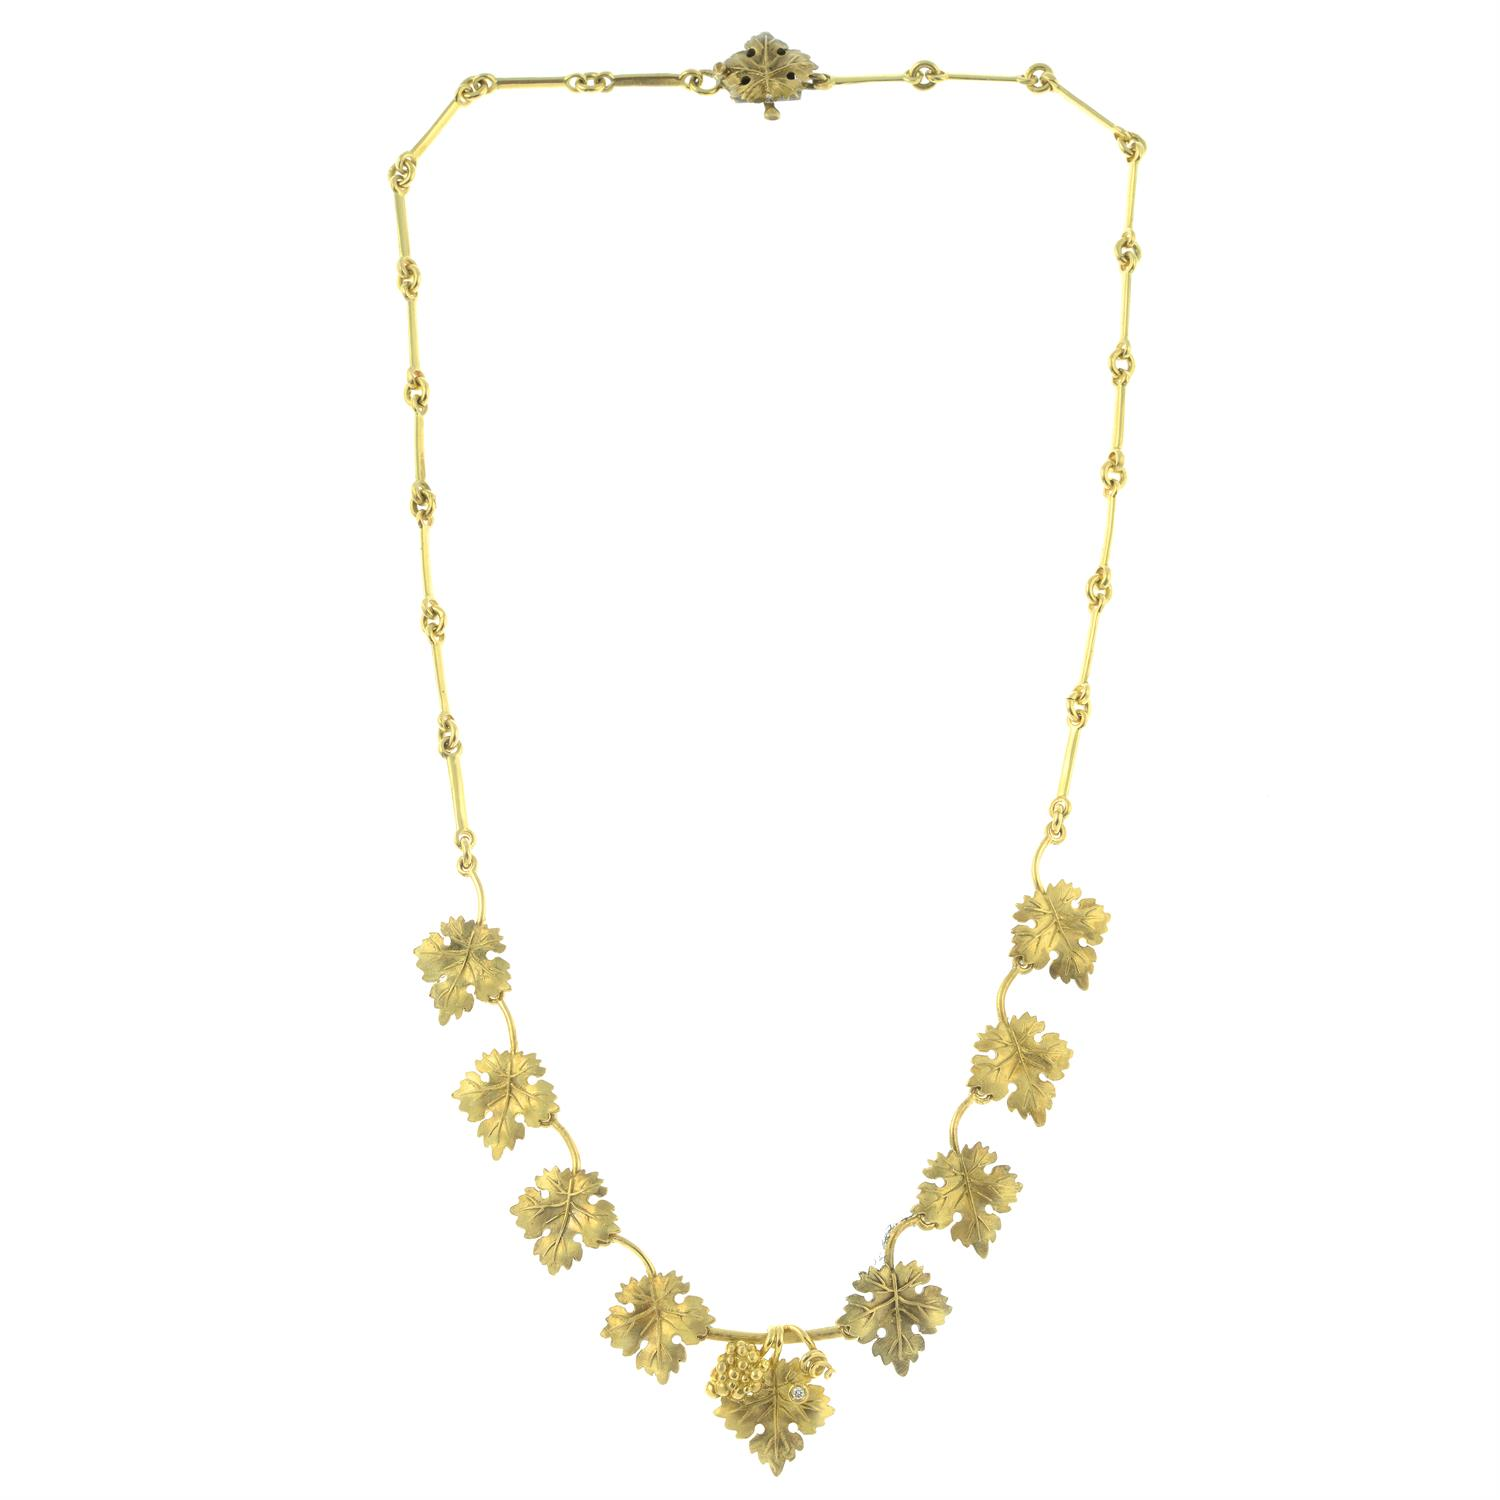 A diamond accent grape and vine leaf necklace, by M. Buccellati. - Image 3 of 6